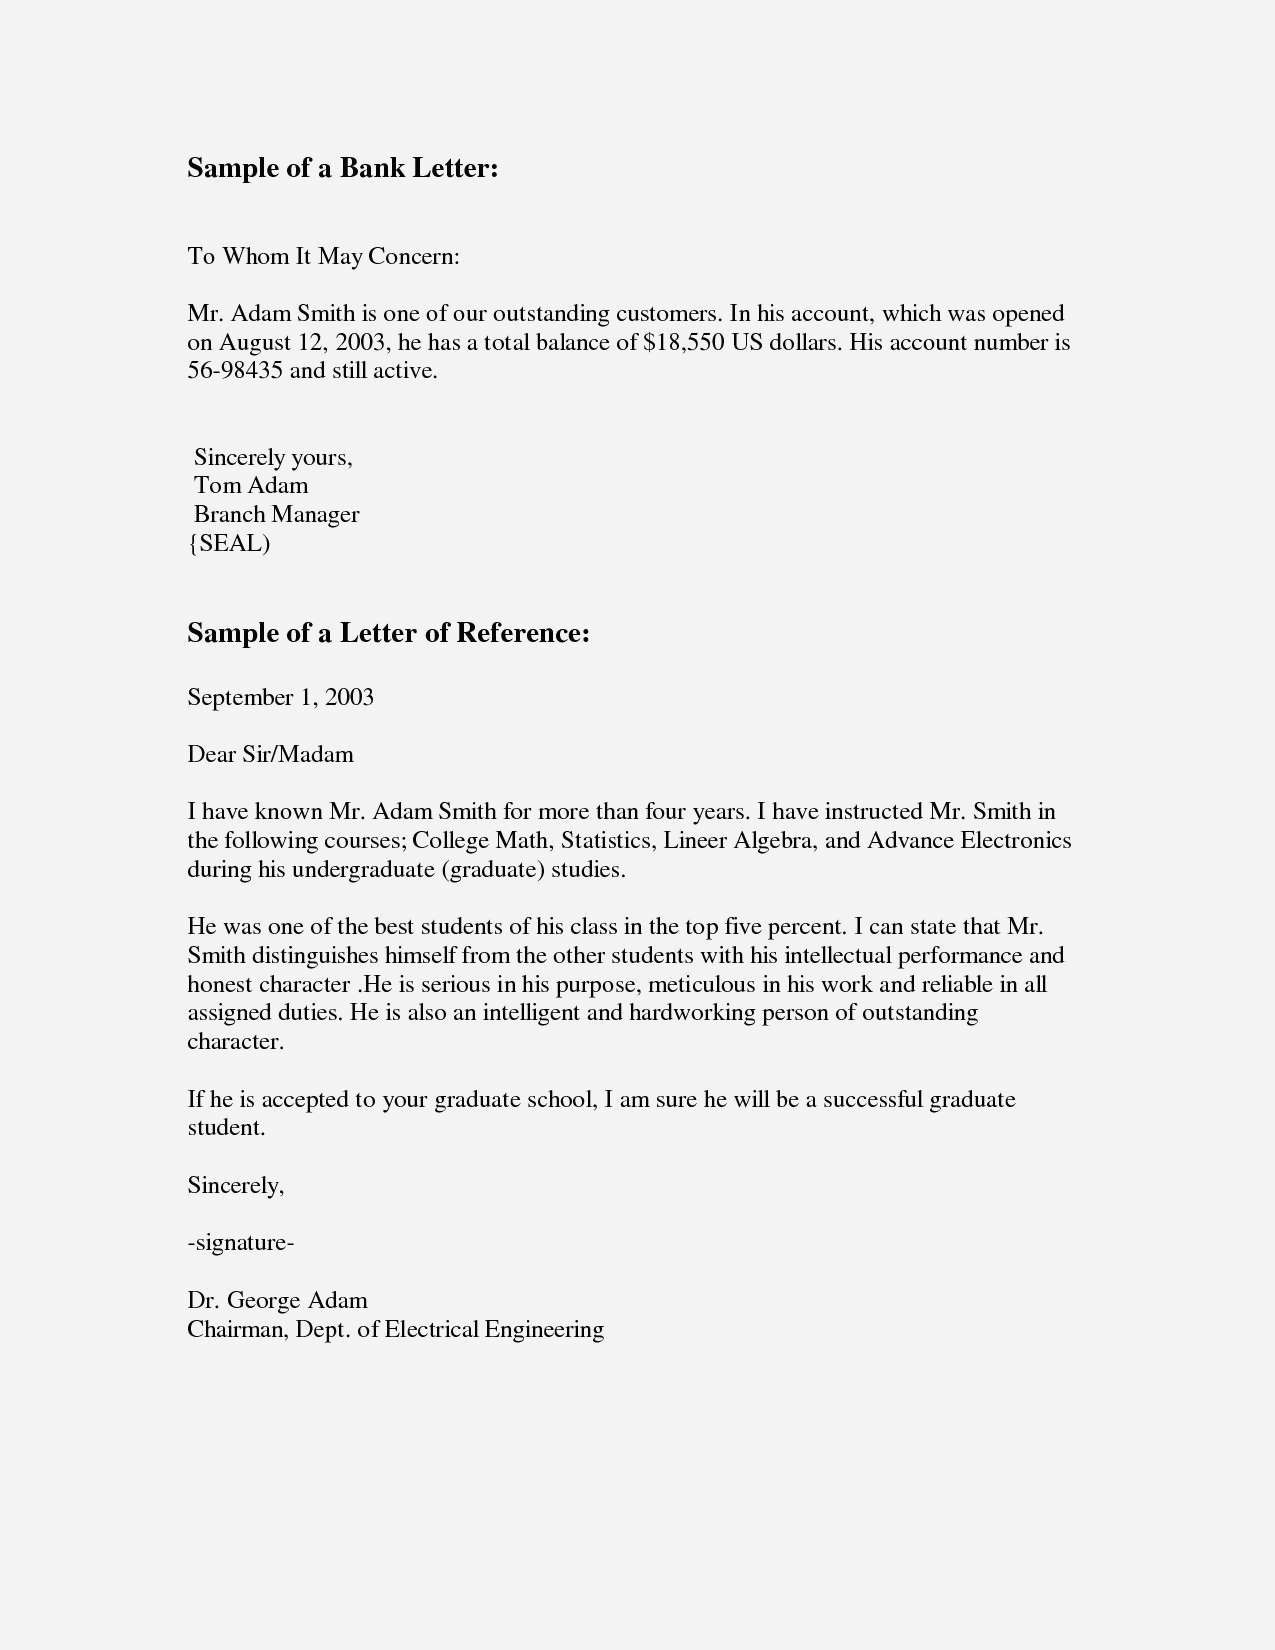 bonus letter template example-Formal Letter Template Unique bylaws Template 0d Wallpapers 50 ficial Letter Template 6-q